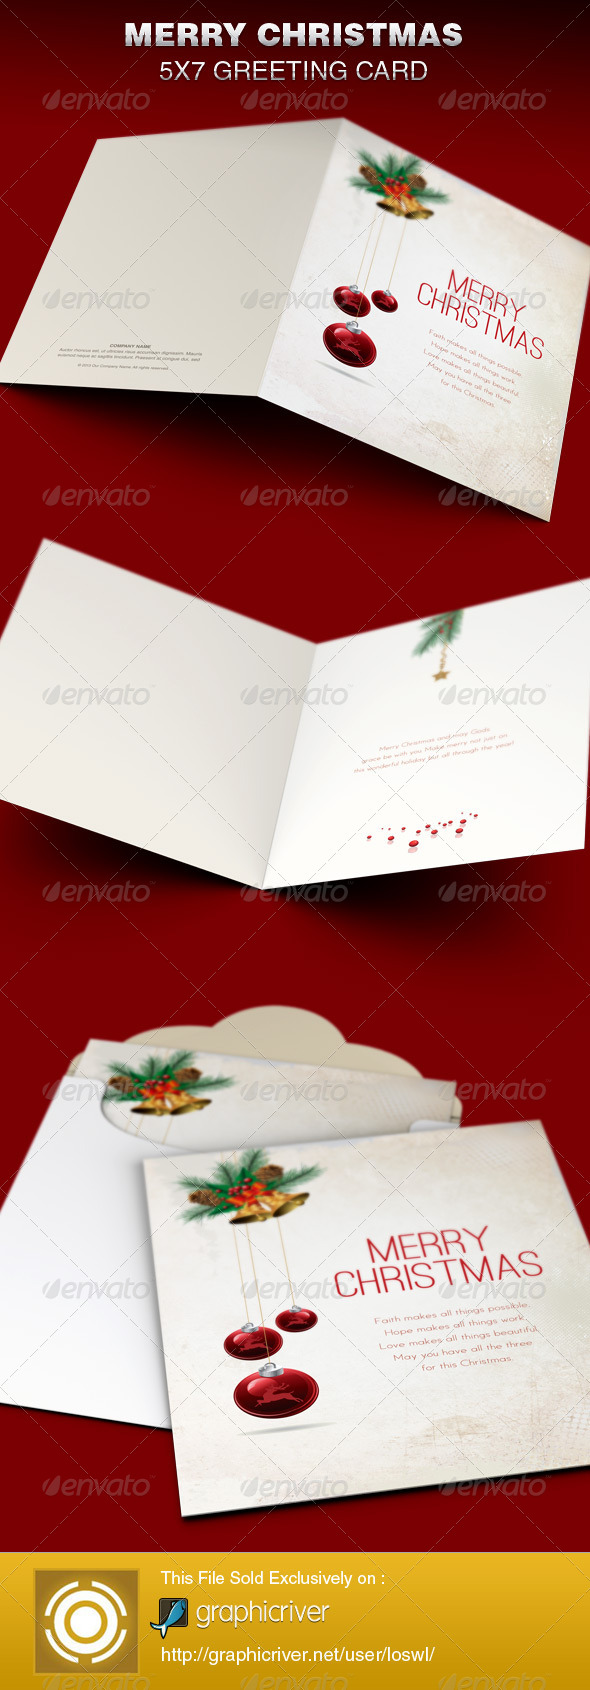 GraphicRiver Merry Christmas Greeting Card Template 6341125